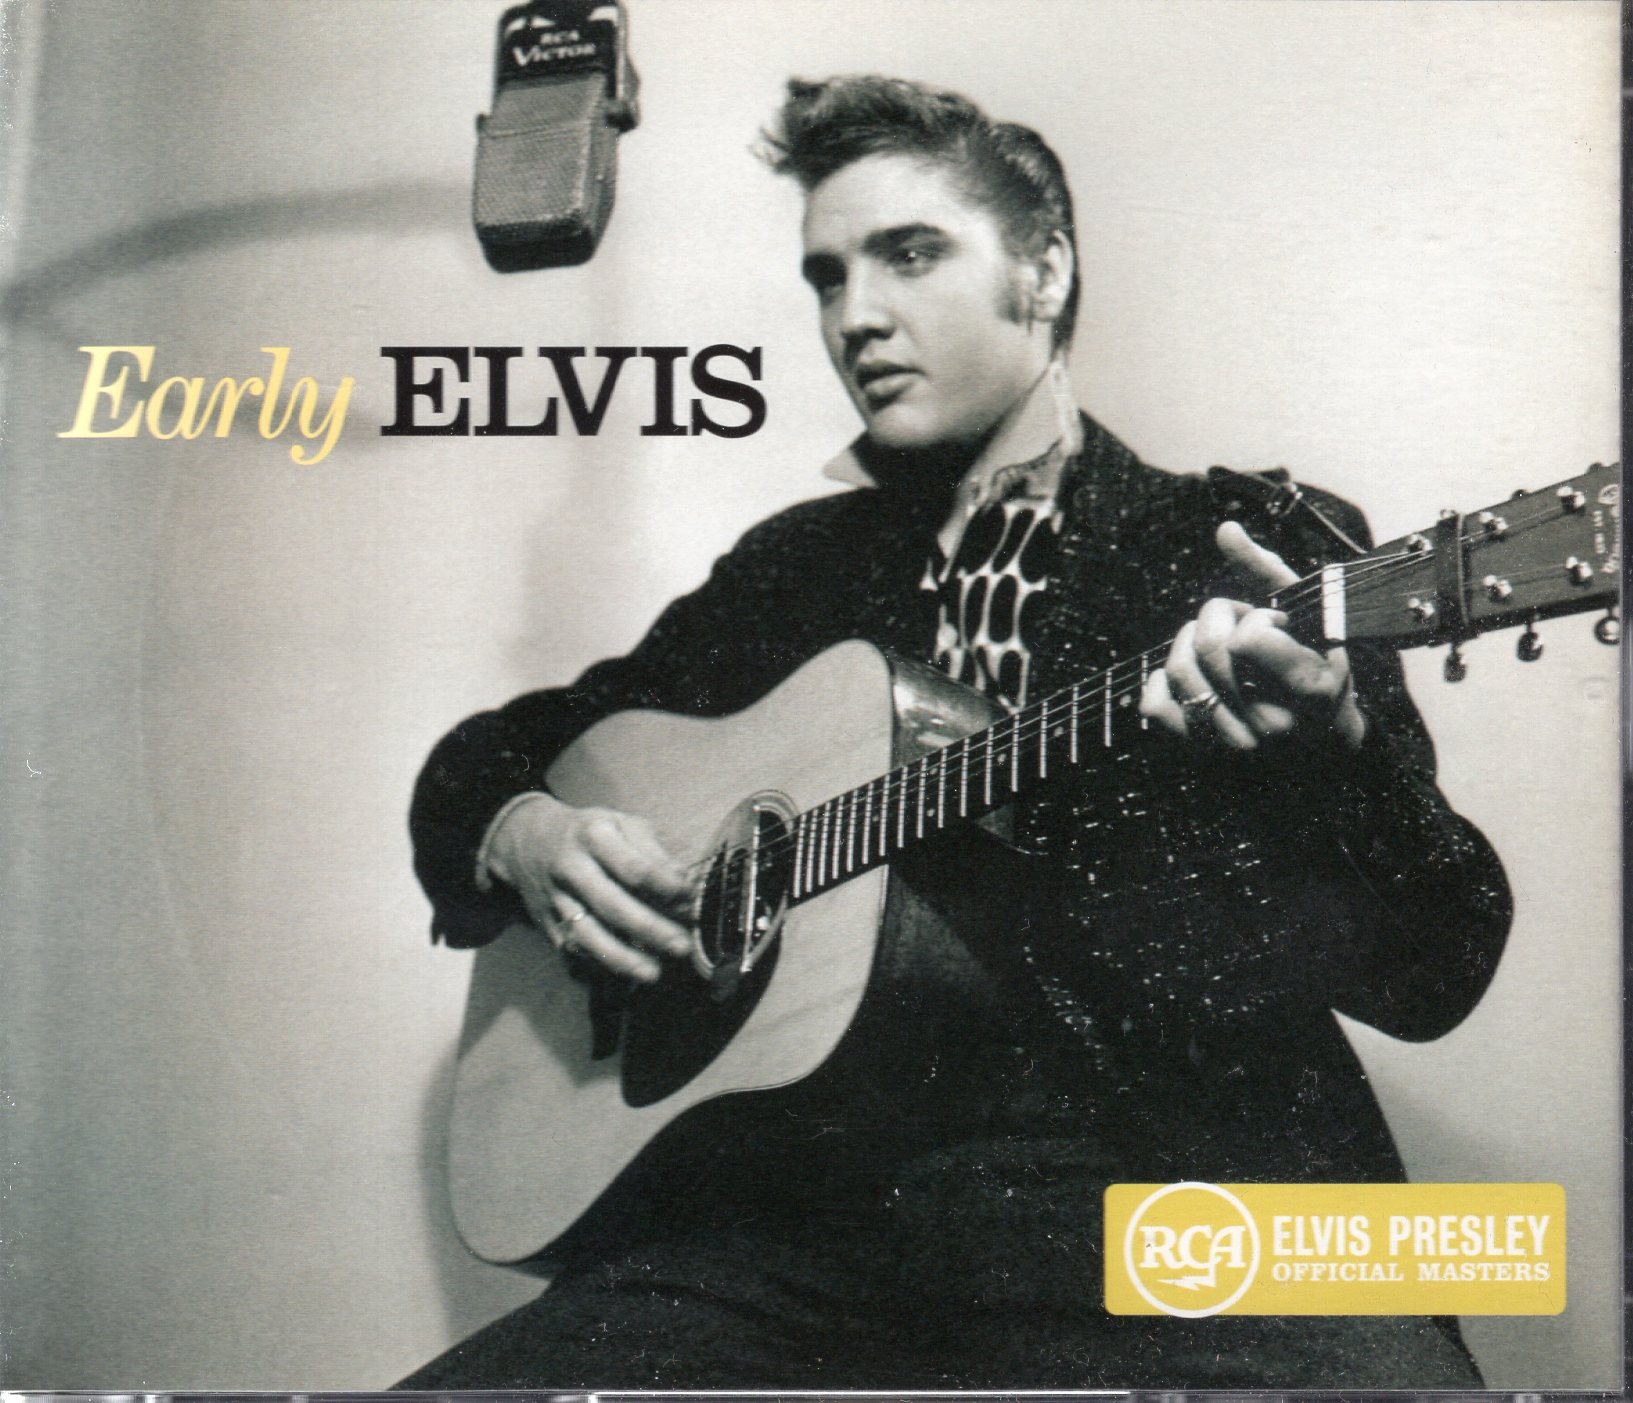 """Early Elvis"" Elvis Presley"